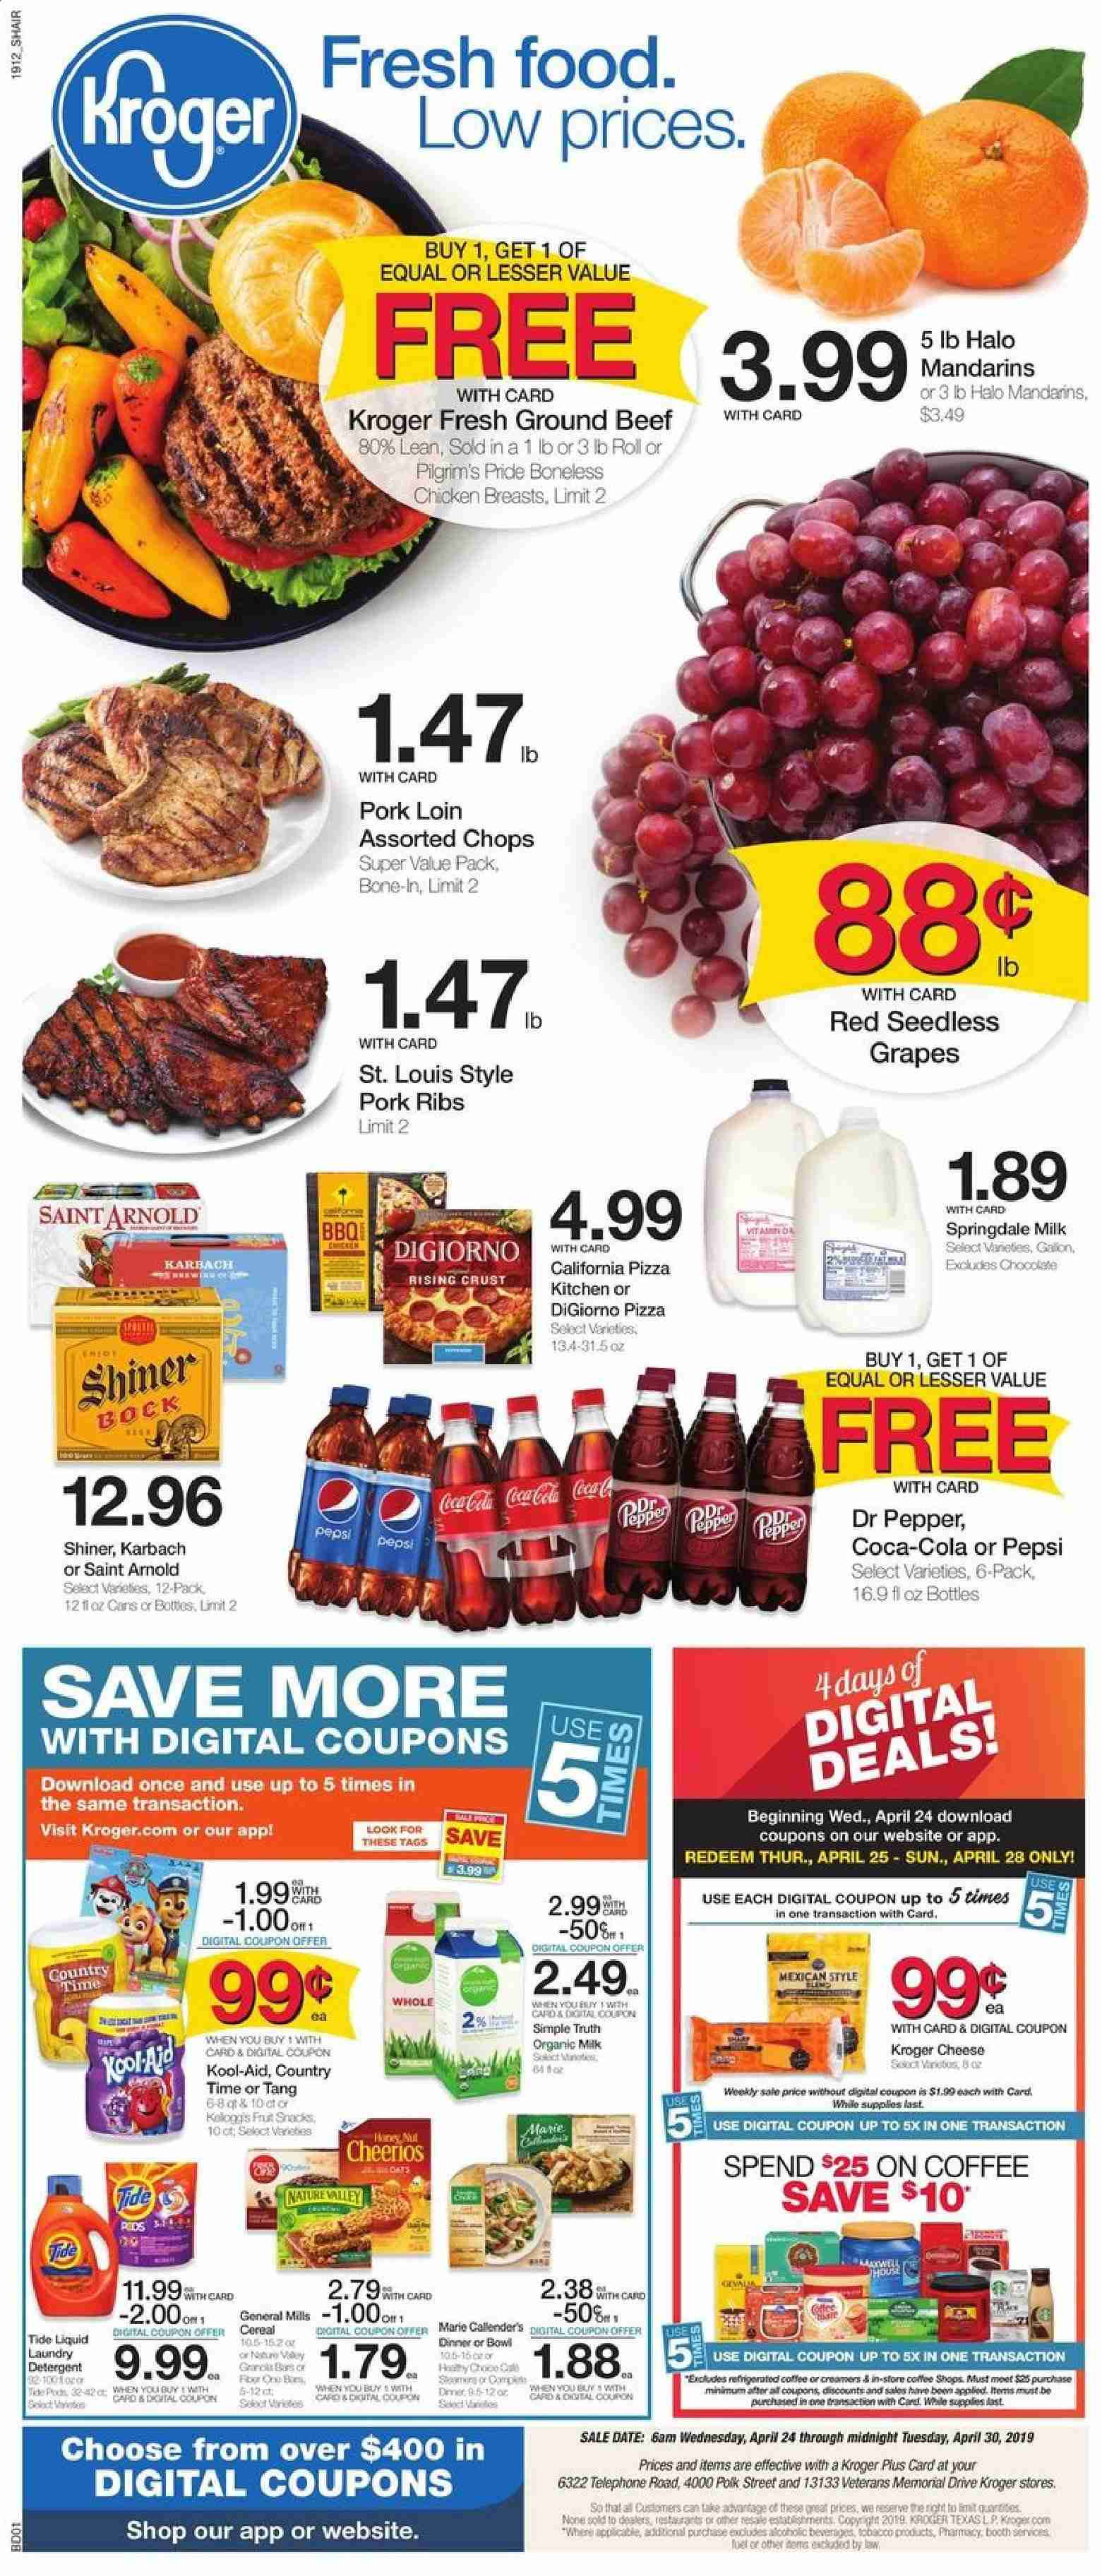 Kroger Flyer - 04.24.2019 - 04.30.2019 - Sales products - beef meat, cereals, coca-cola, coffee, grapes, ground beef, tide, kitchen, pizza, polk, pork meat, pork ribs, chicken, chicken breast, pepsi, pepper, cereal, ribs, shiner, dr. pepper, liquid. Page 1.